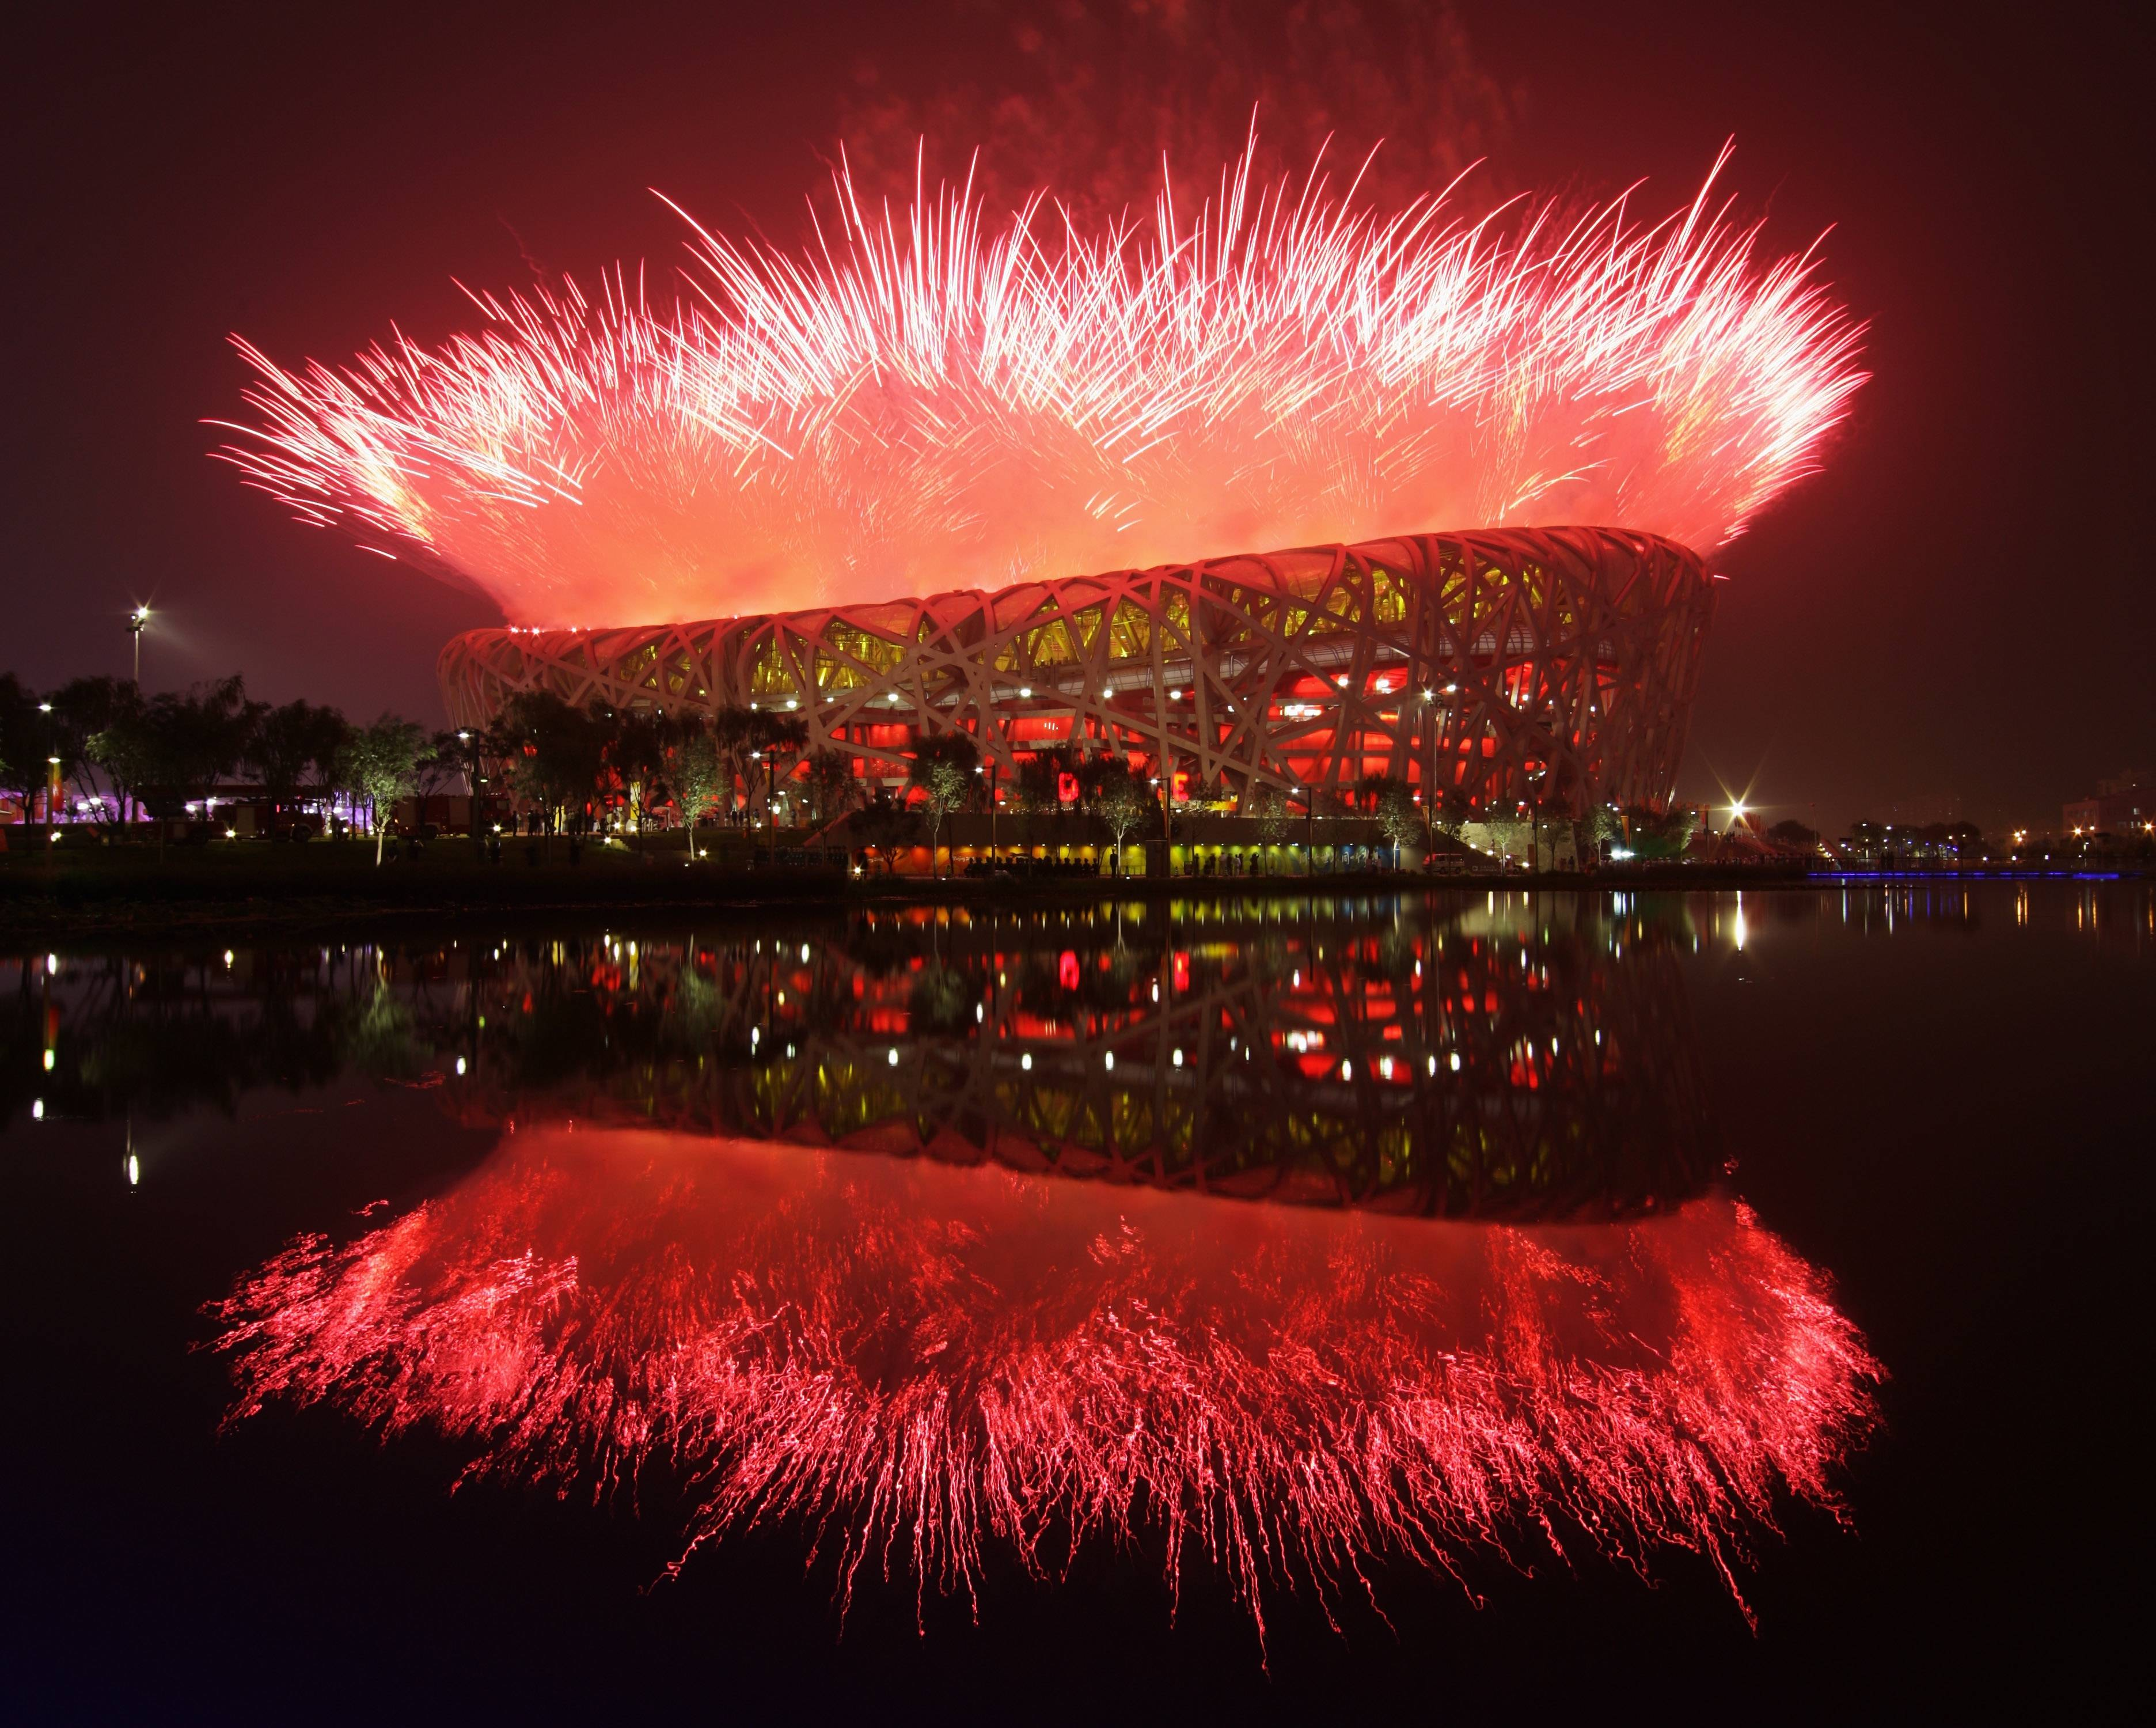 The Chinese National Stadium in Beijing – The Bird's Nest Stadium homesthetics